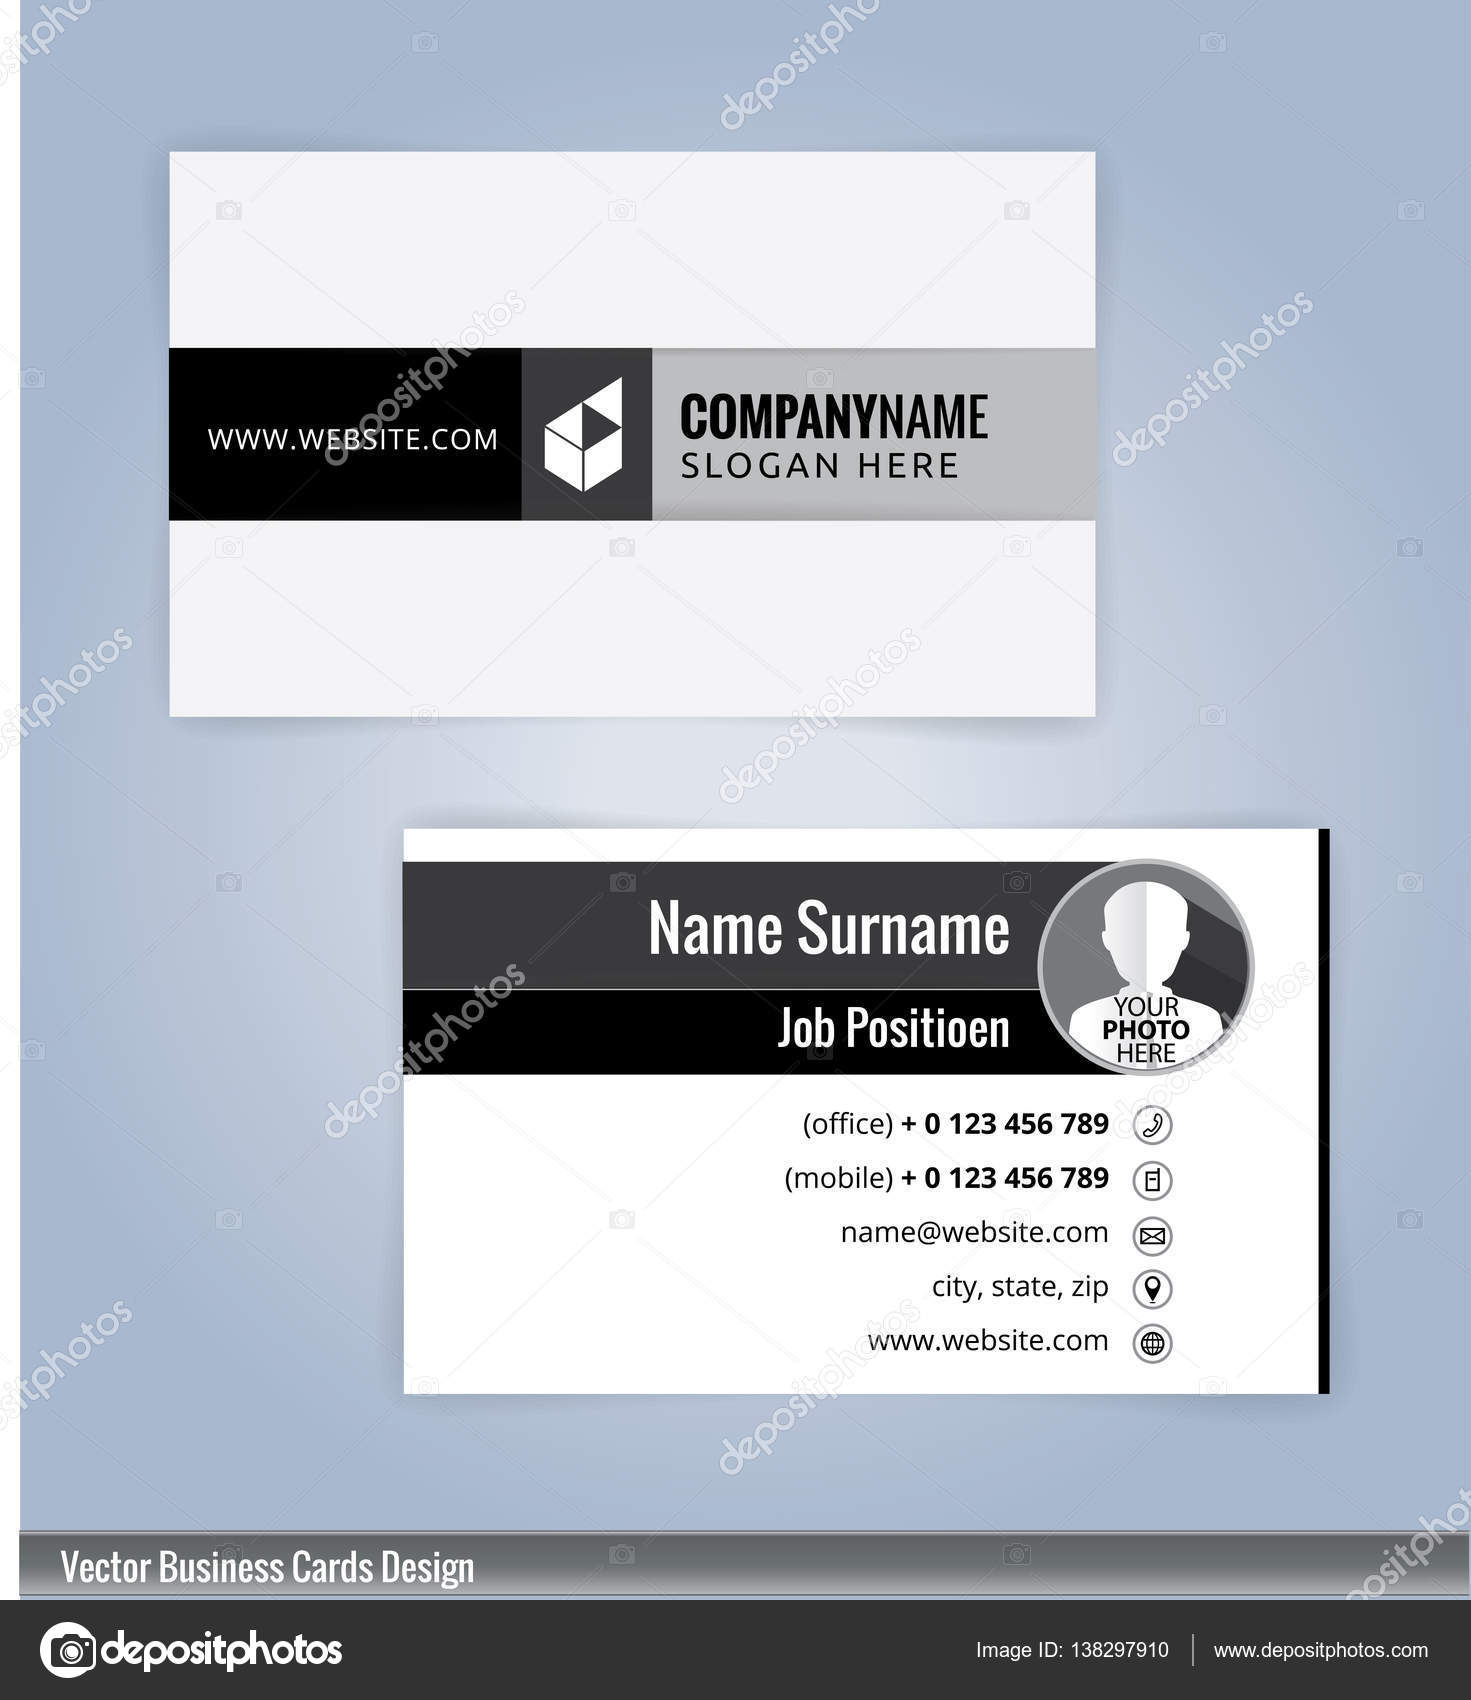 Black and white business card template illustration vector 10 black and white business card template illustration vector 10 vetor de stock reheart Choice Image